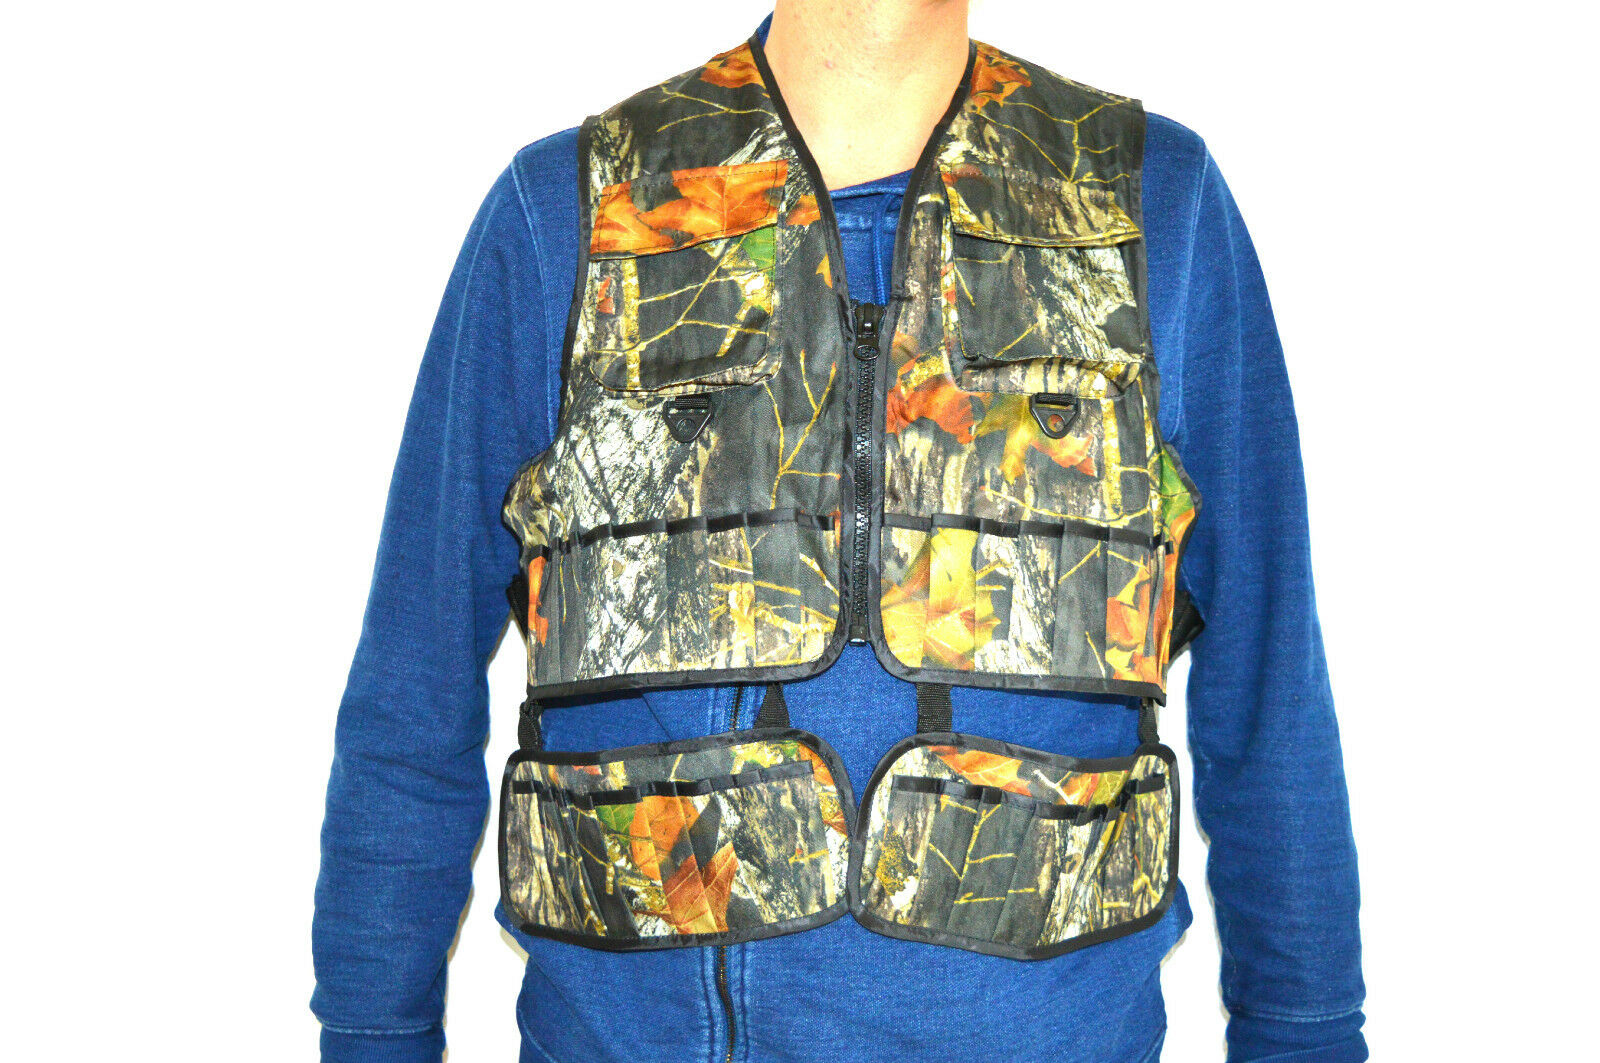 Hunting Vest Hunting Camoflauge, Camping, Outdoor with Cartridge Holder